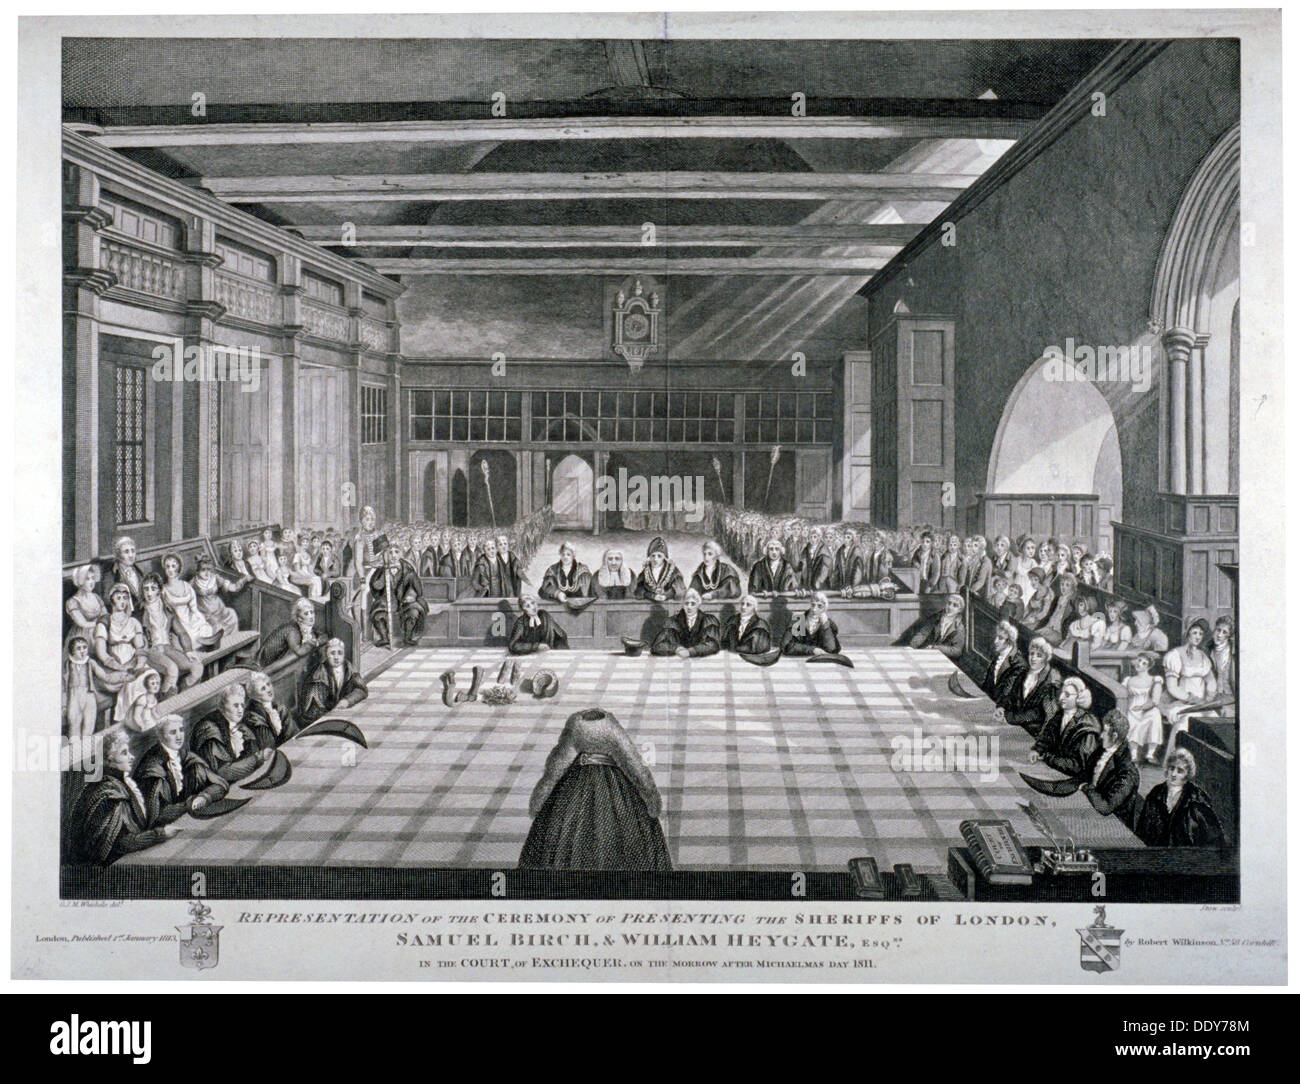 Ceremony in Westminster Hall, London, 1811.                               Artist: James Stow - Stock Image